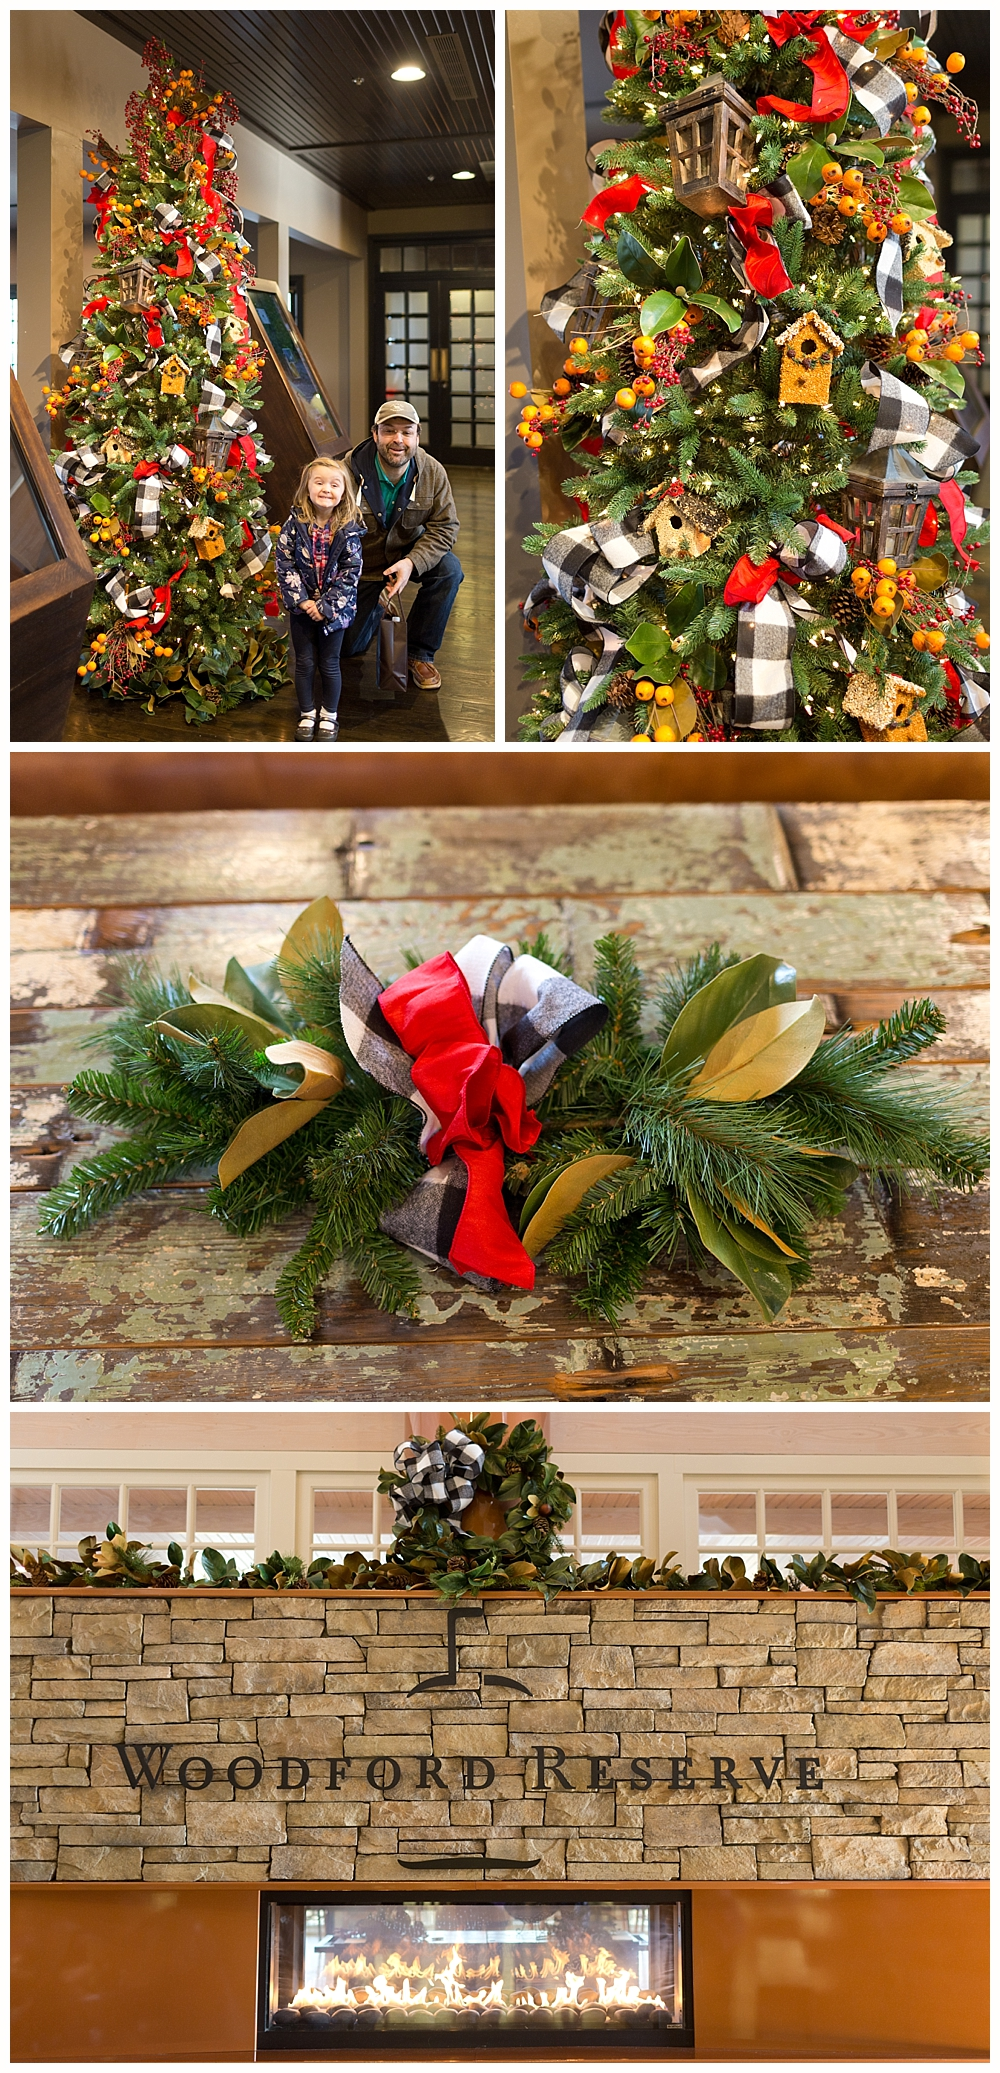 Woodford Reserve Christmas Decorations